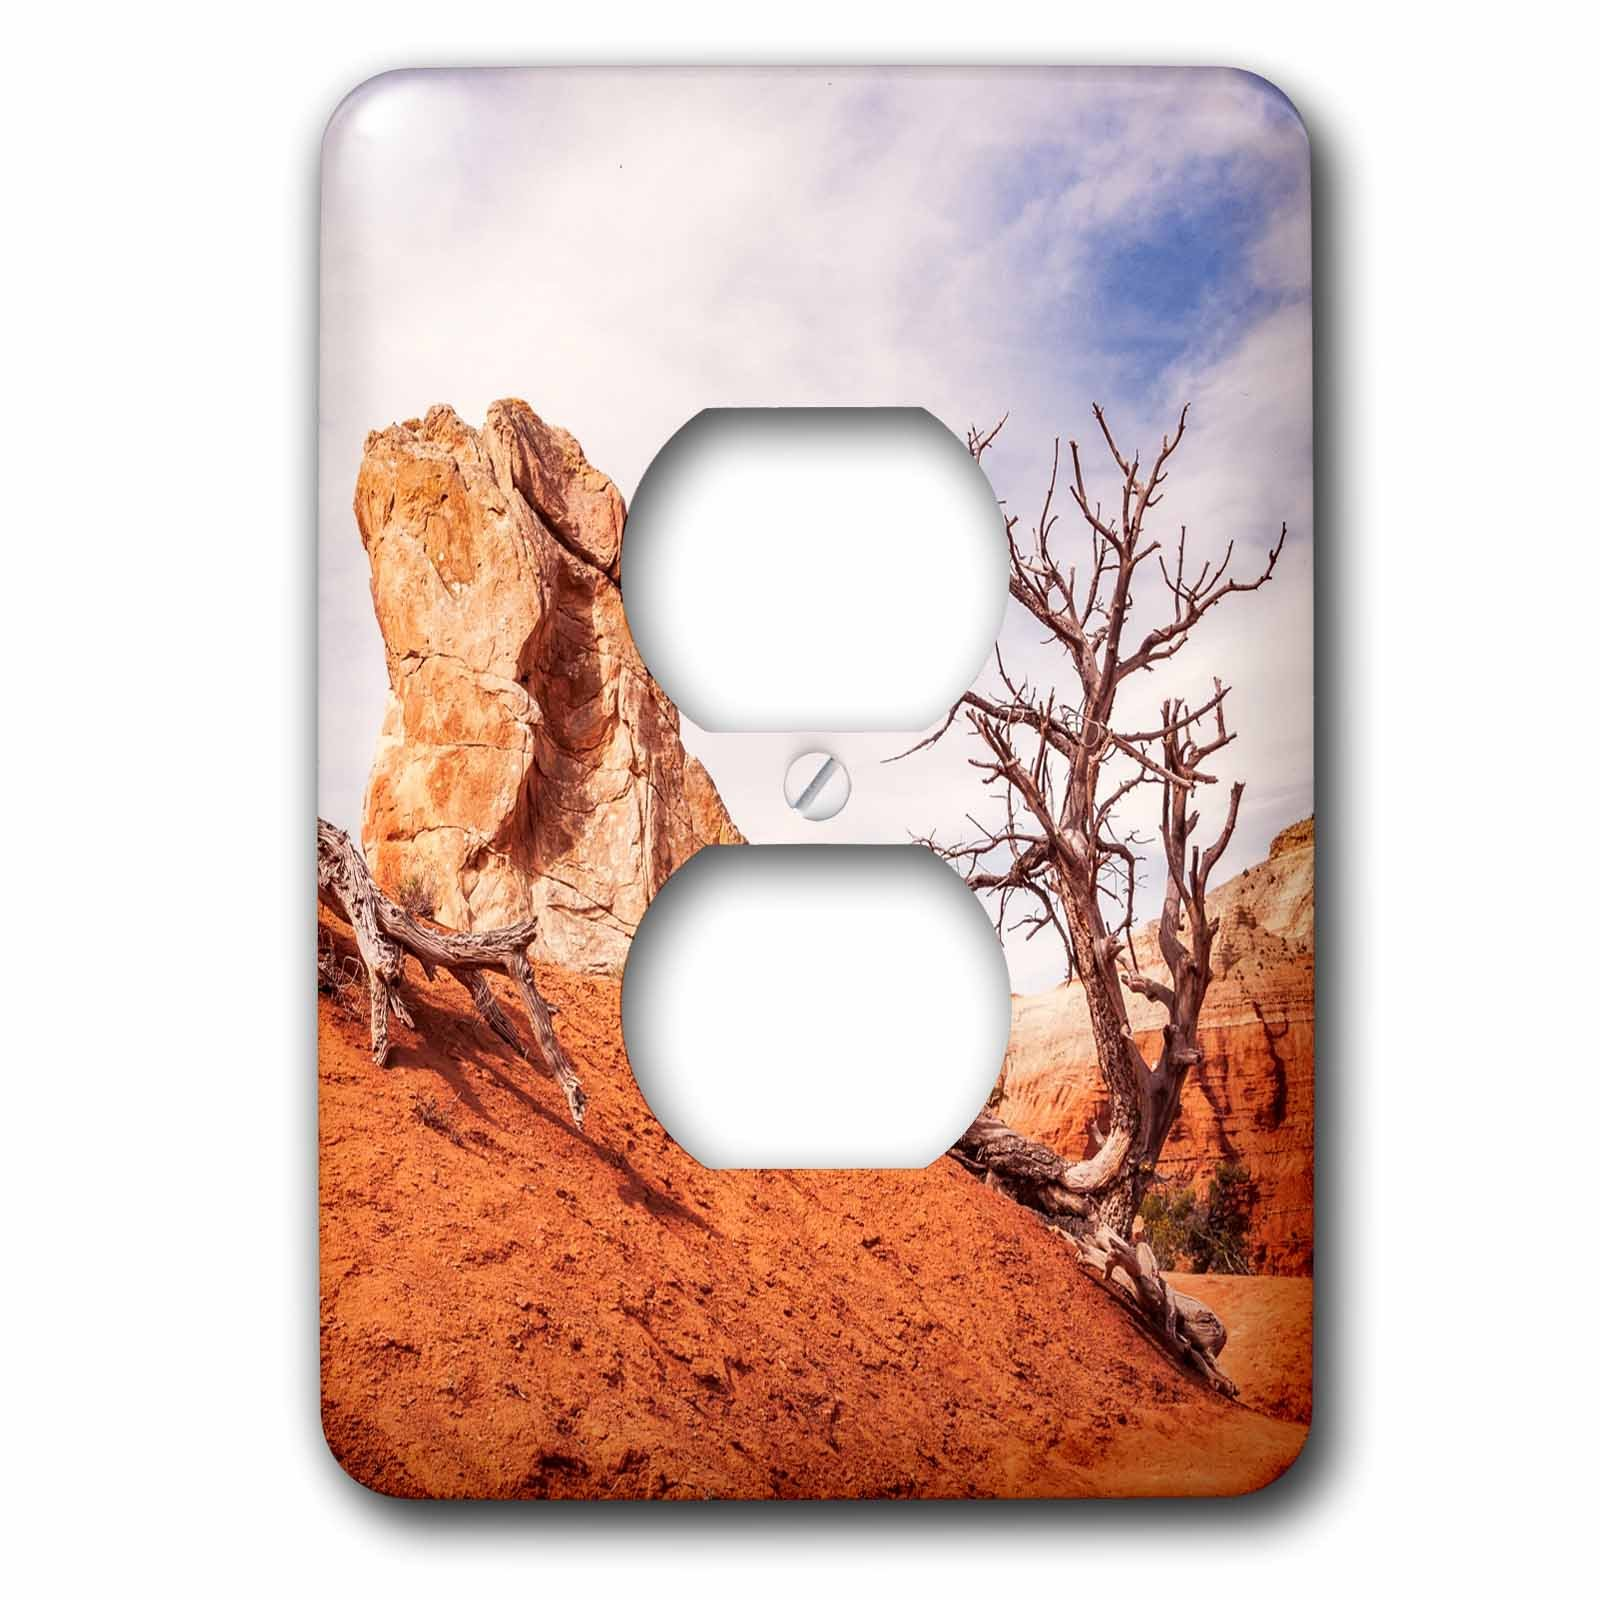 3dRose DanielaPhotography - Landscape, Nature - Going down the slope at Kodachrome Basin State Park, Utah, USA - Light Switch Covers - 2 plug outlet cover (lsp_282030_6)